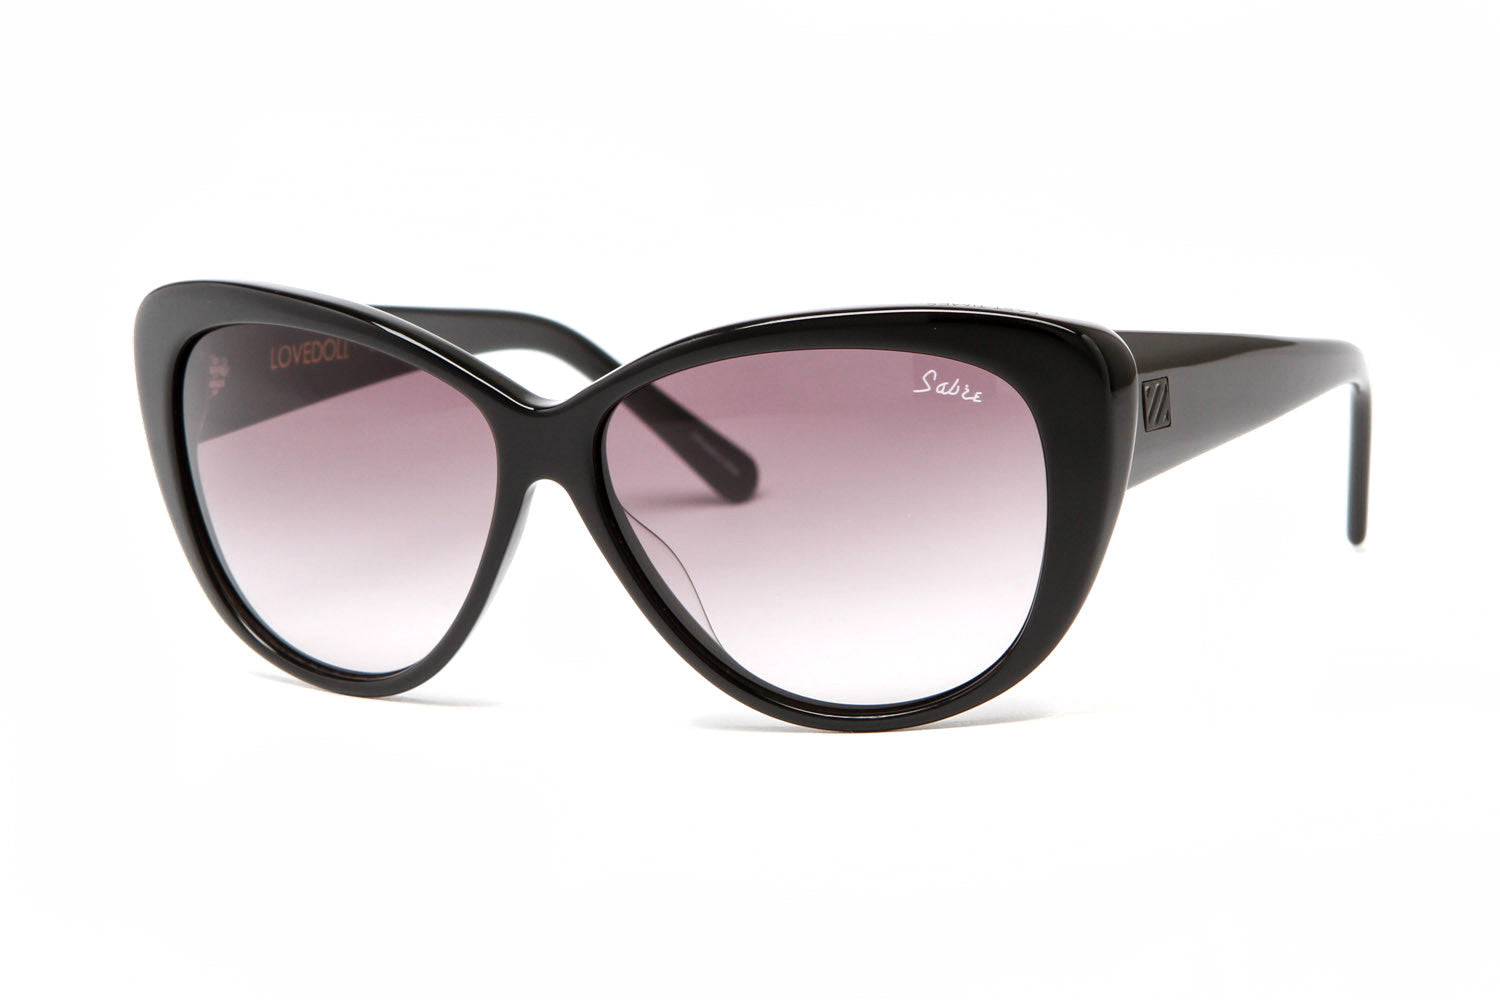 LOVEDOLLSUNGLASSES(BLACKGLOSS/GREYGRADIENT)